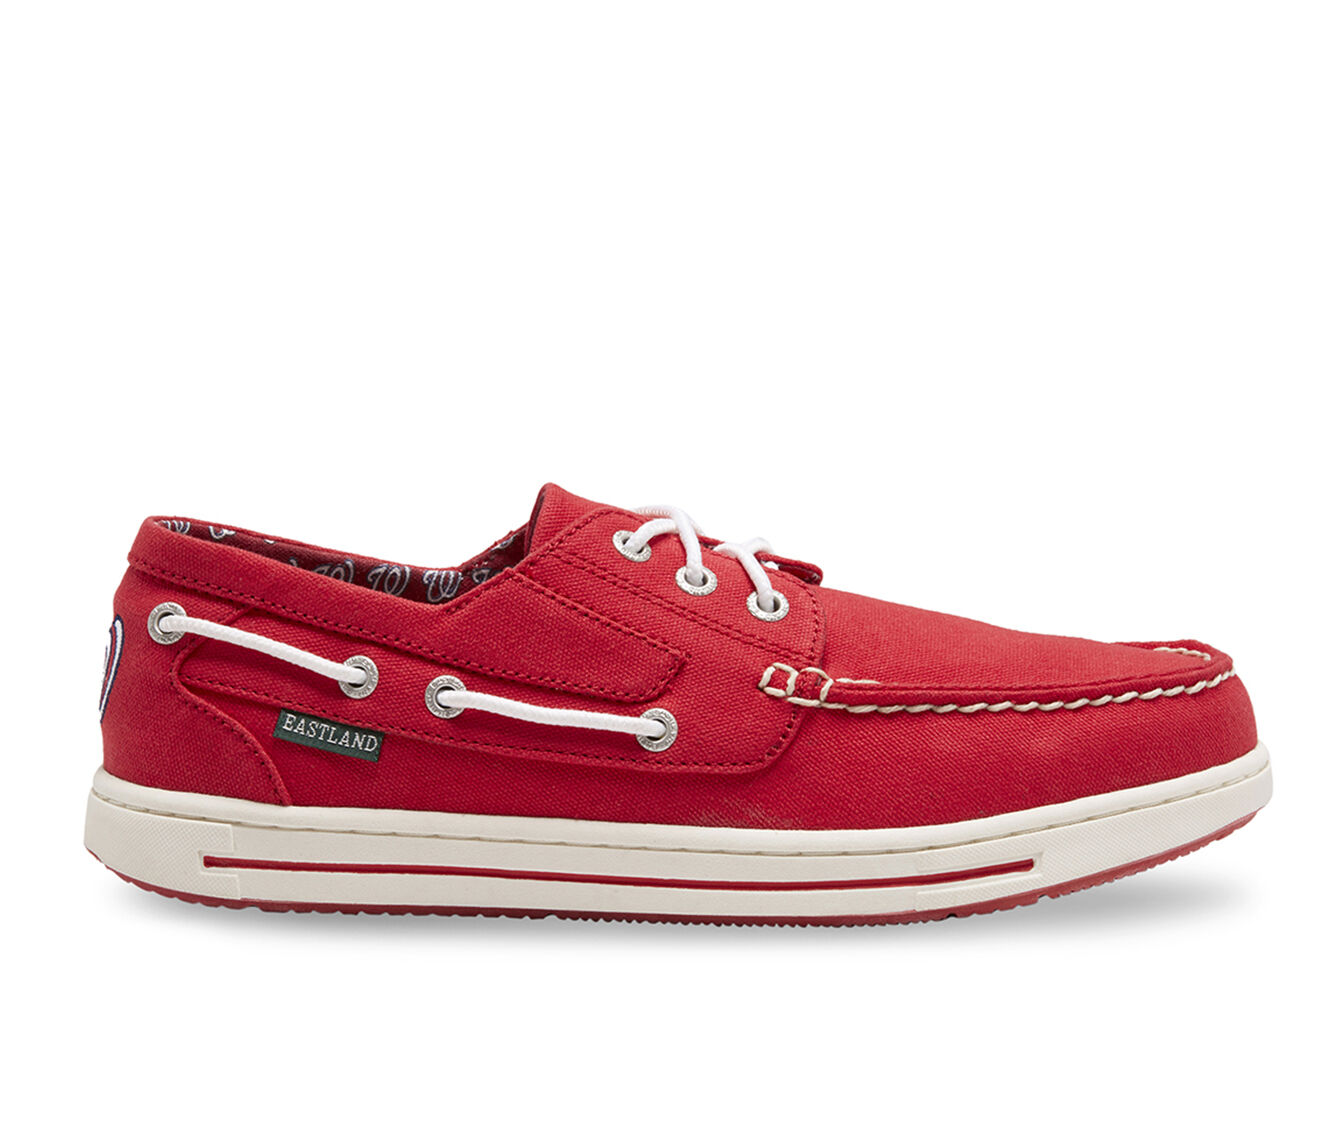 Men's Eastland Adventure MLB Nationals Boat Shoes Red